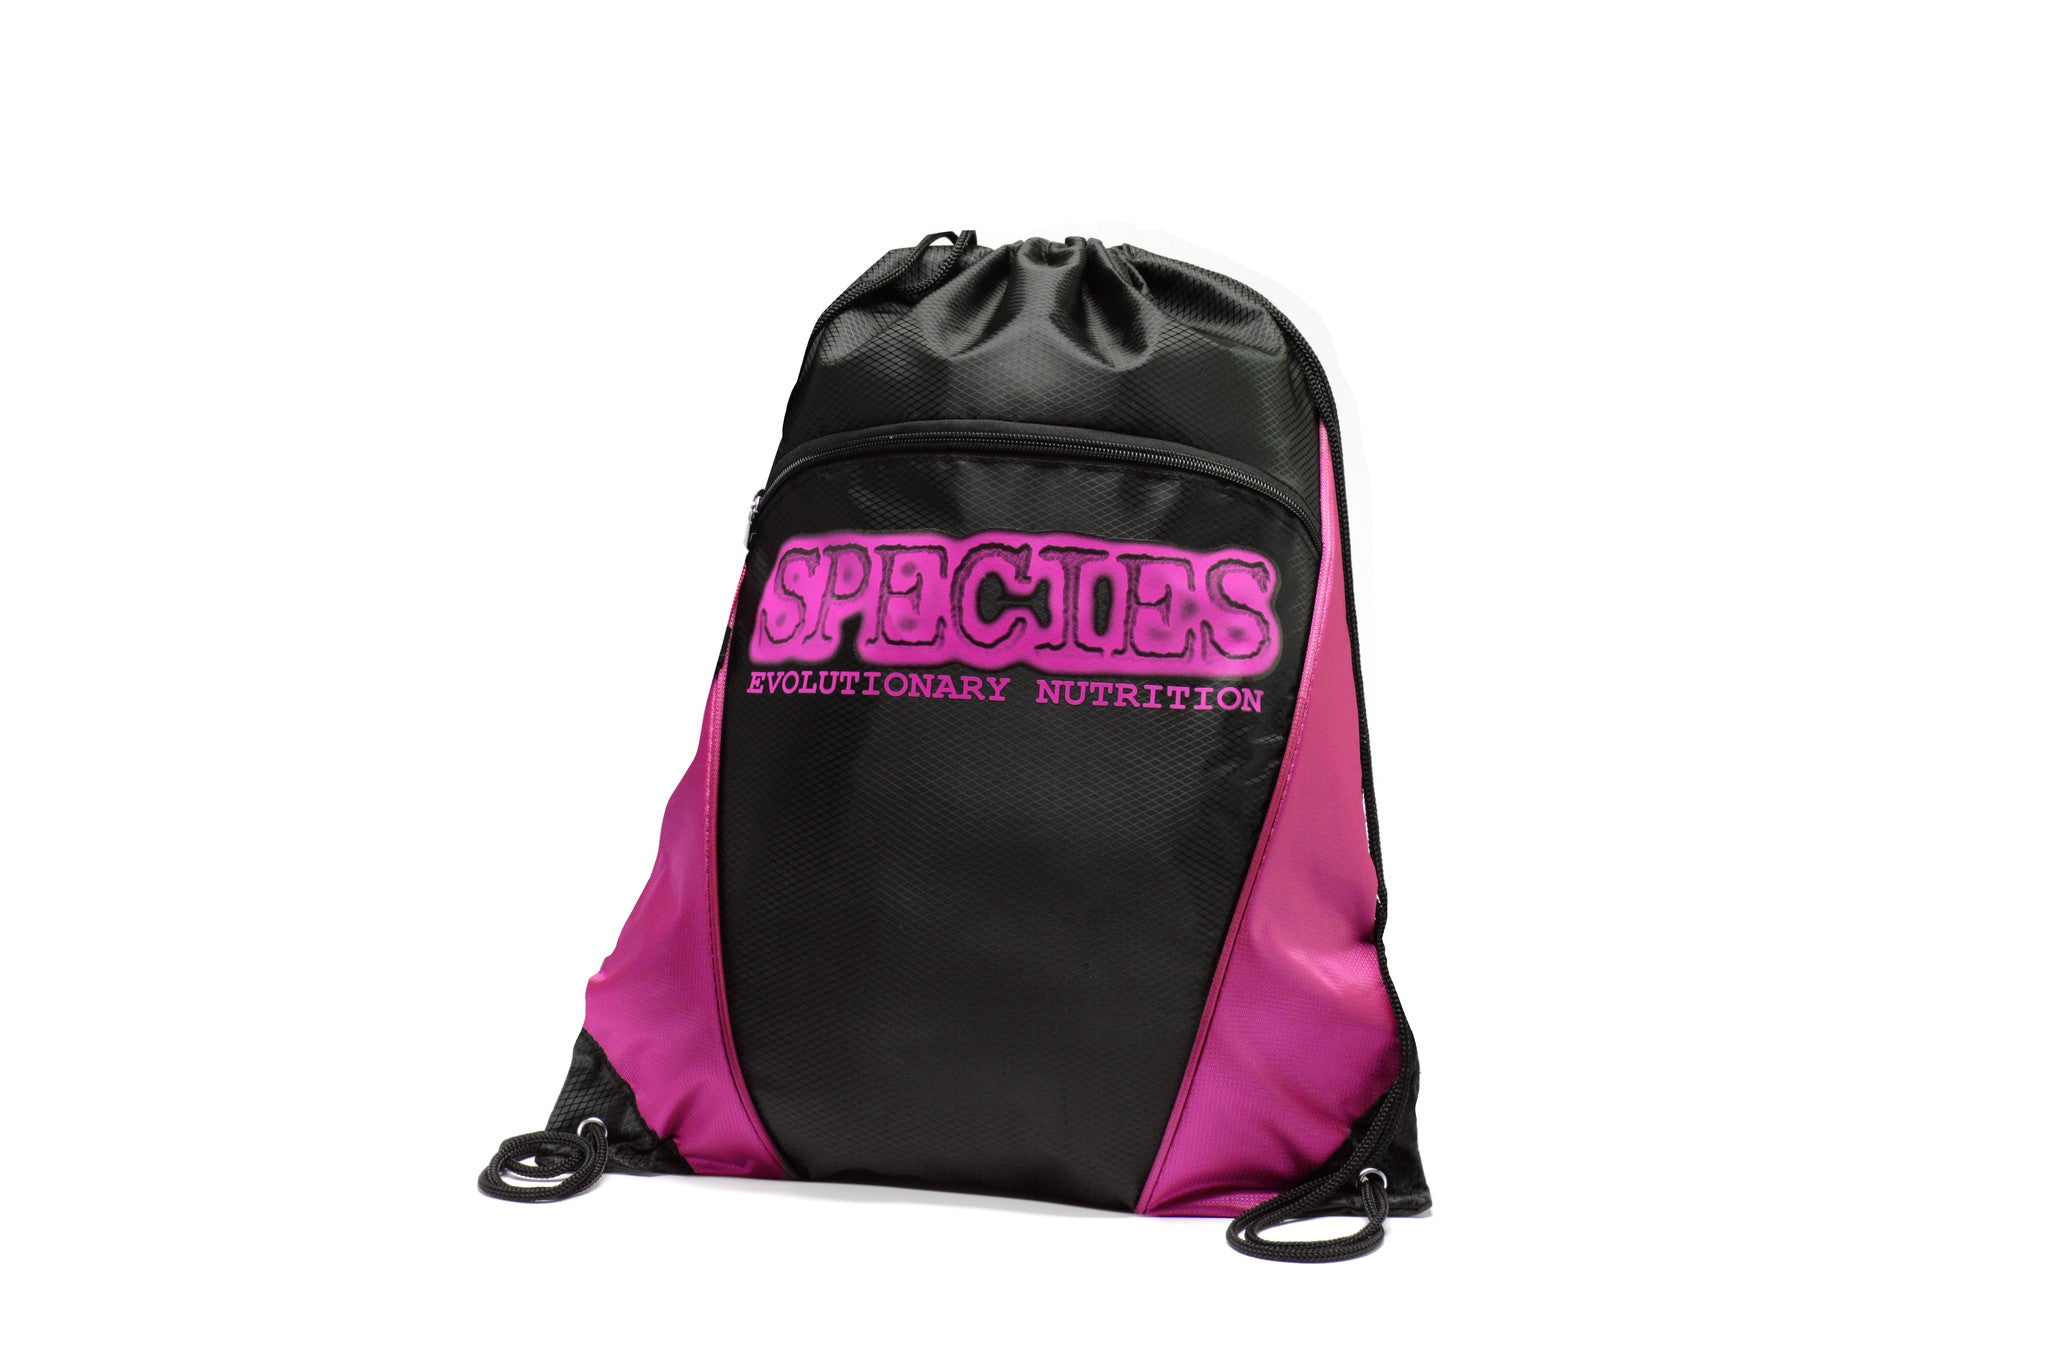 Species Cinch Sack